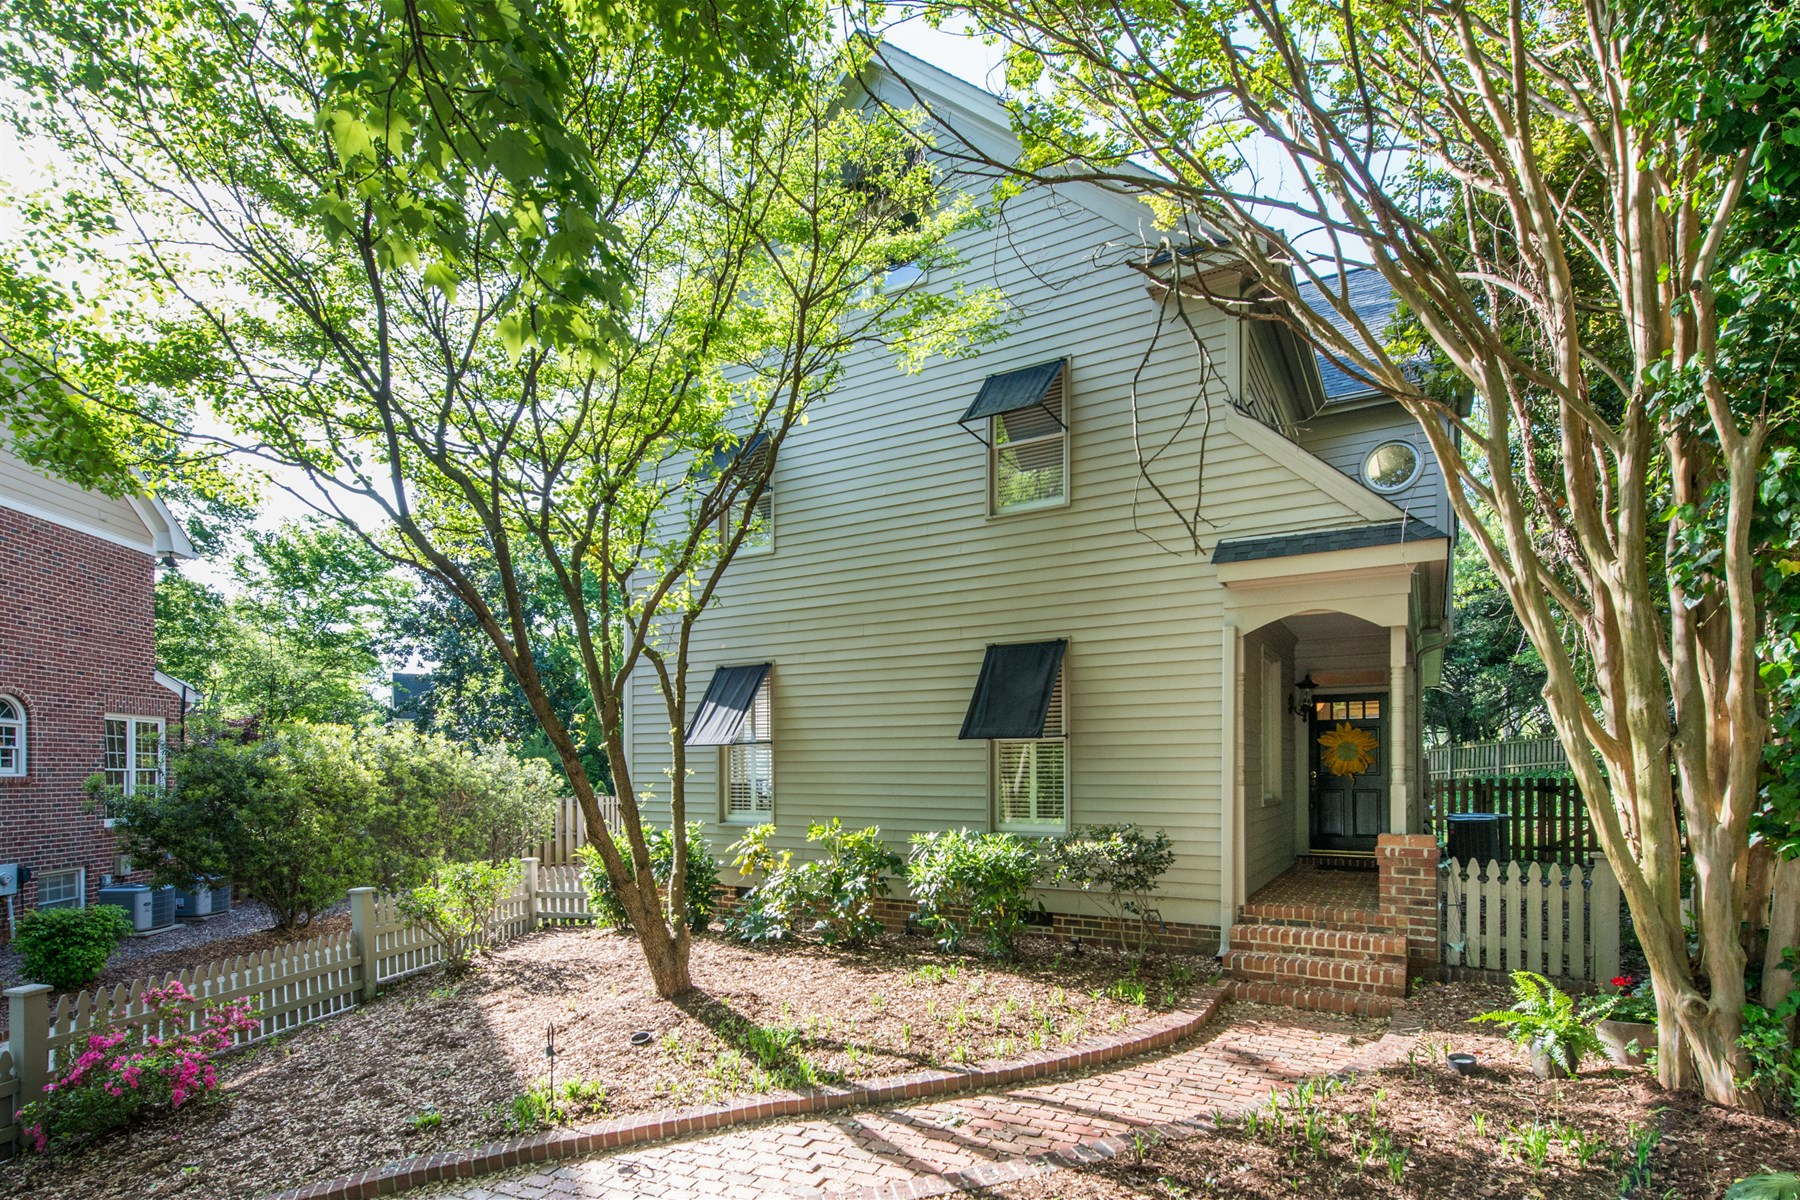 Single Family Home for Sale at Anderson Craftsman 325 Shaftsberry Court Raleigh, North Carolina 27609 United States